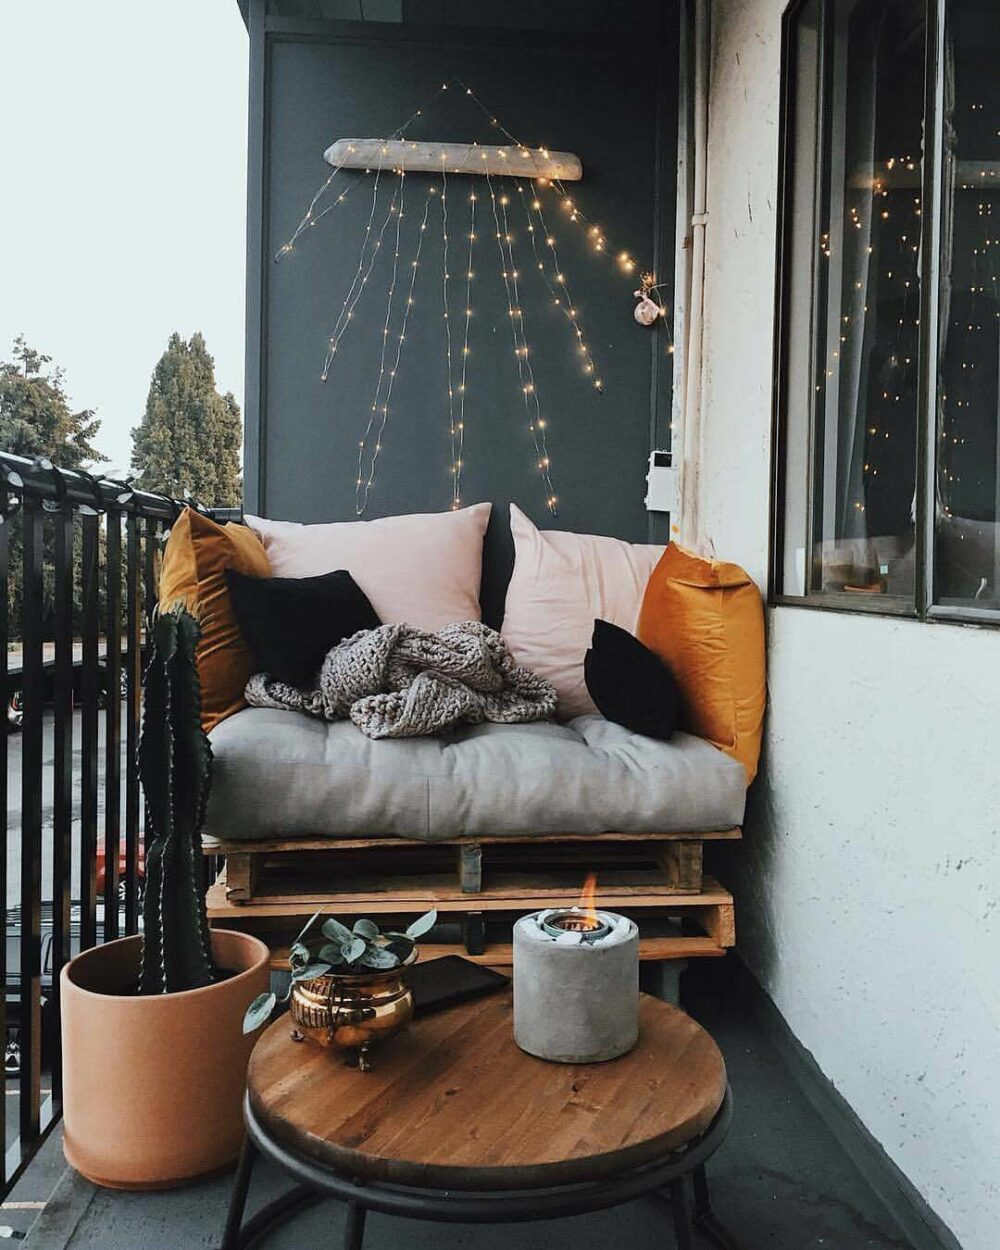 20 Exciting Balcony Decor Ideas to Make the Best Out of the Balcony